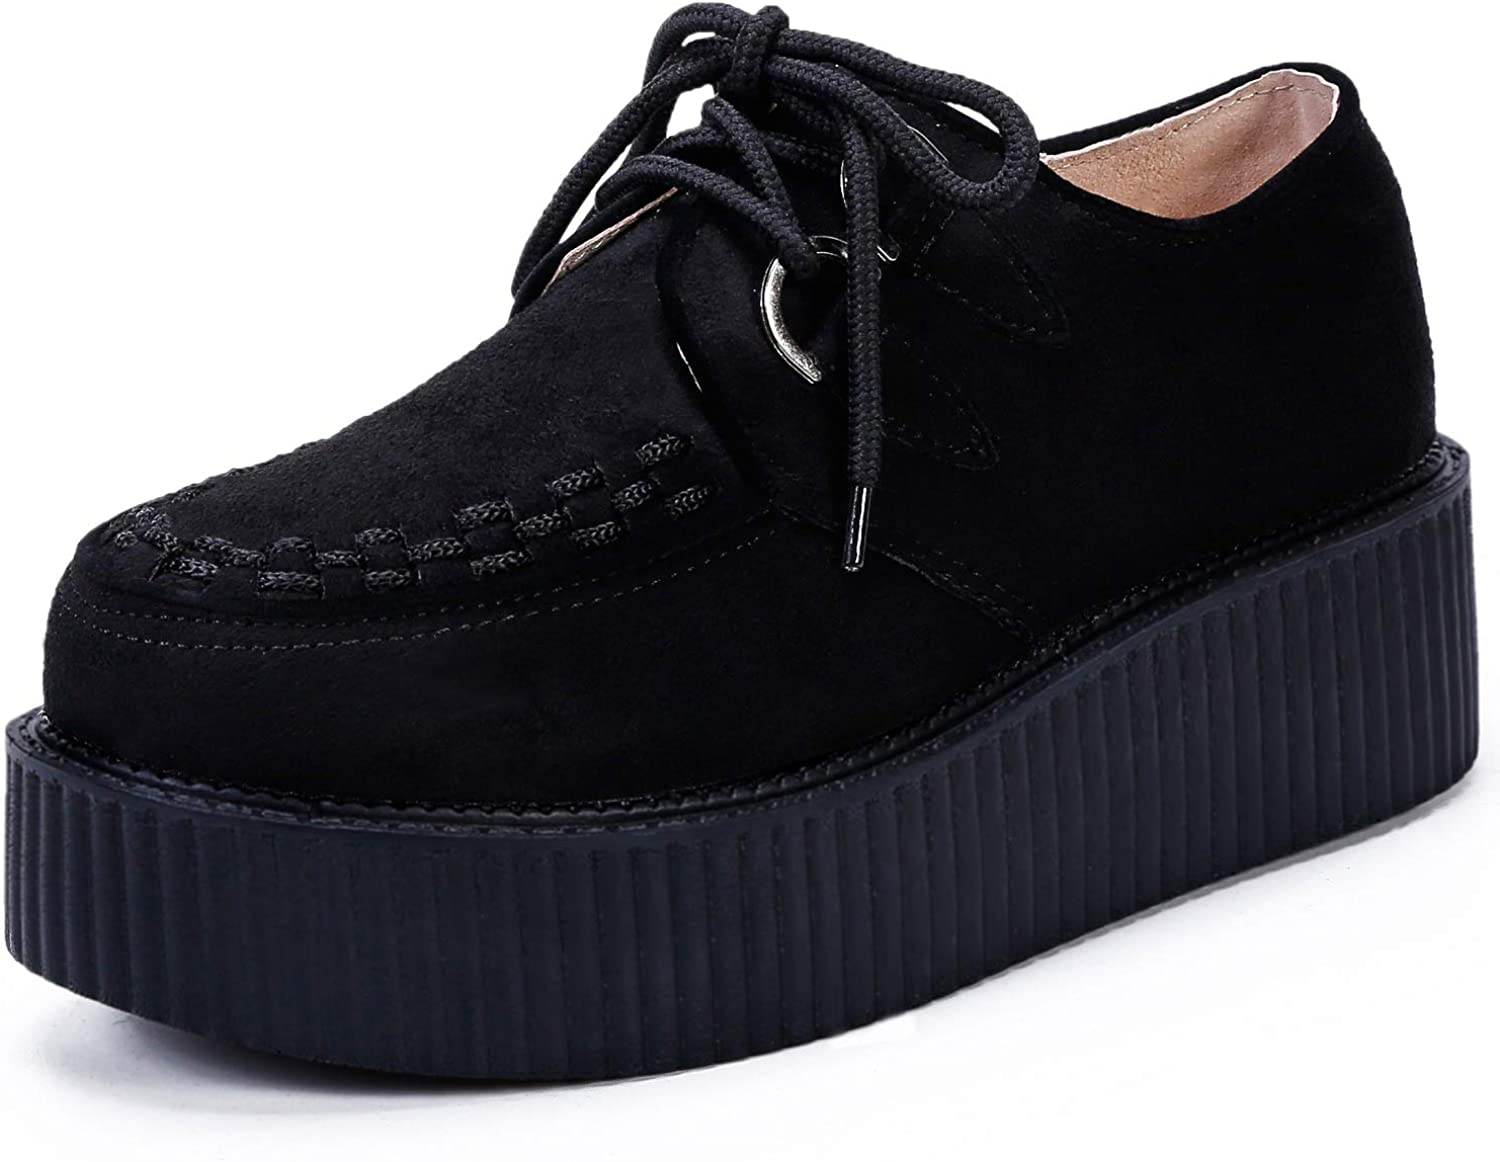 Women/'s High Platform Creepers Wedge Sneakers Lace Casual Shoes Leather x